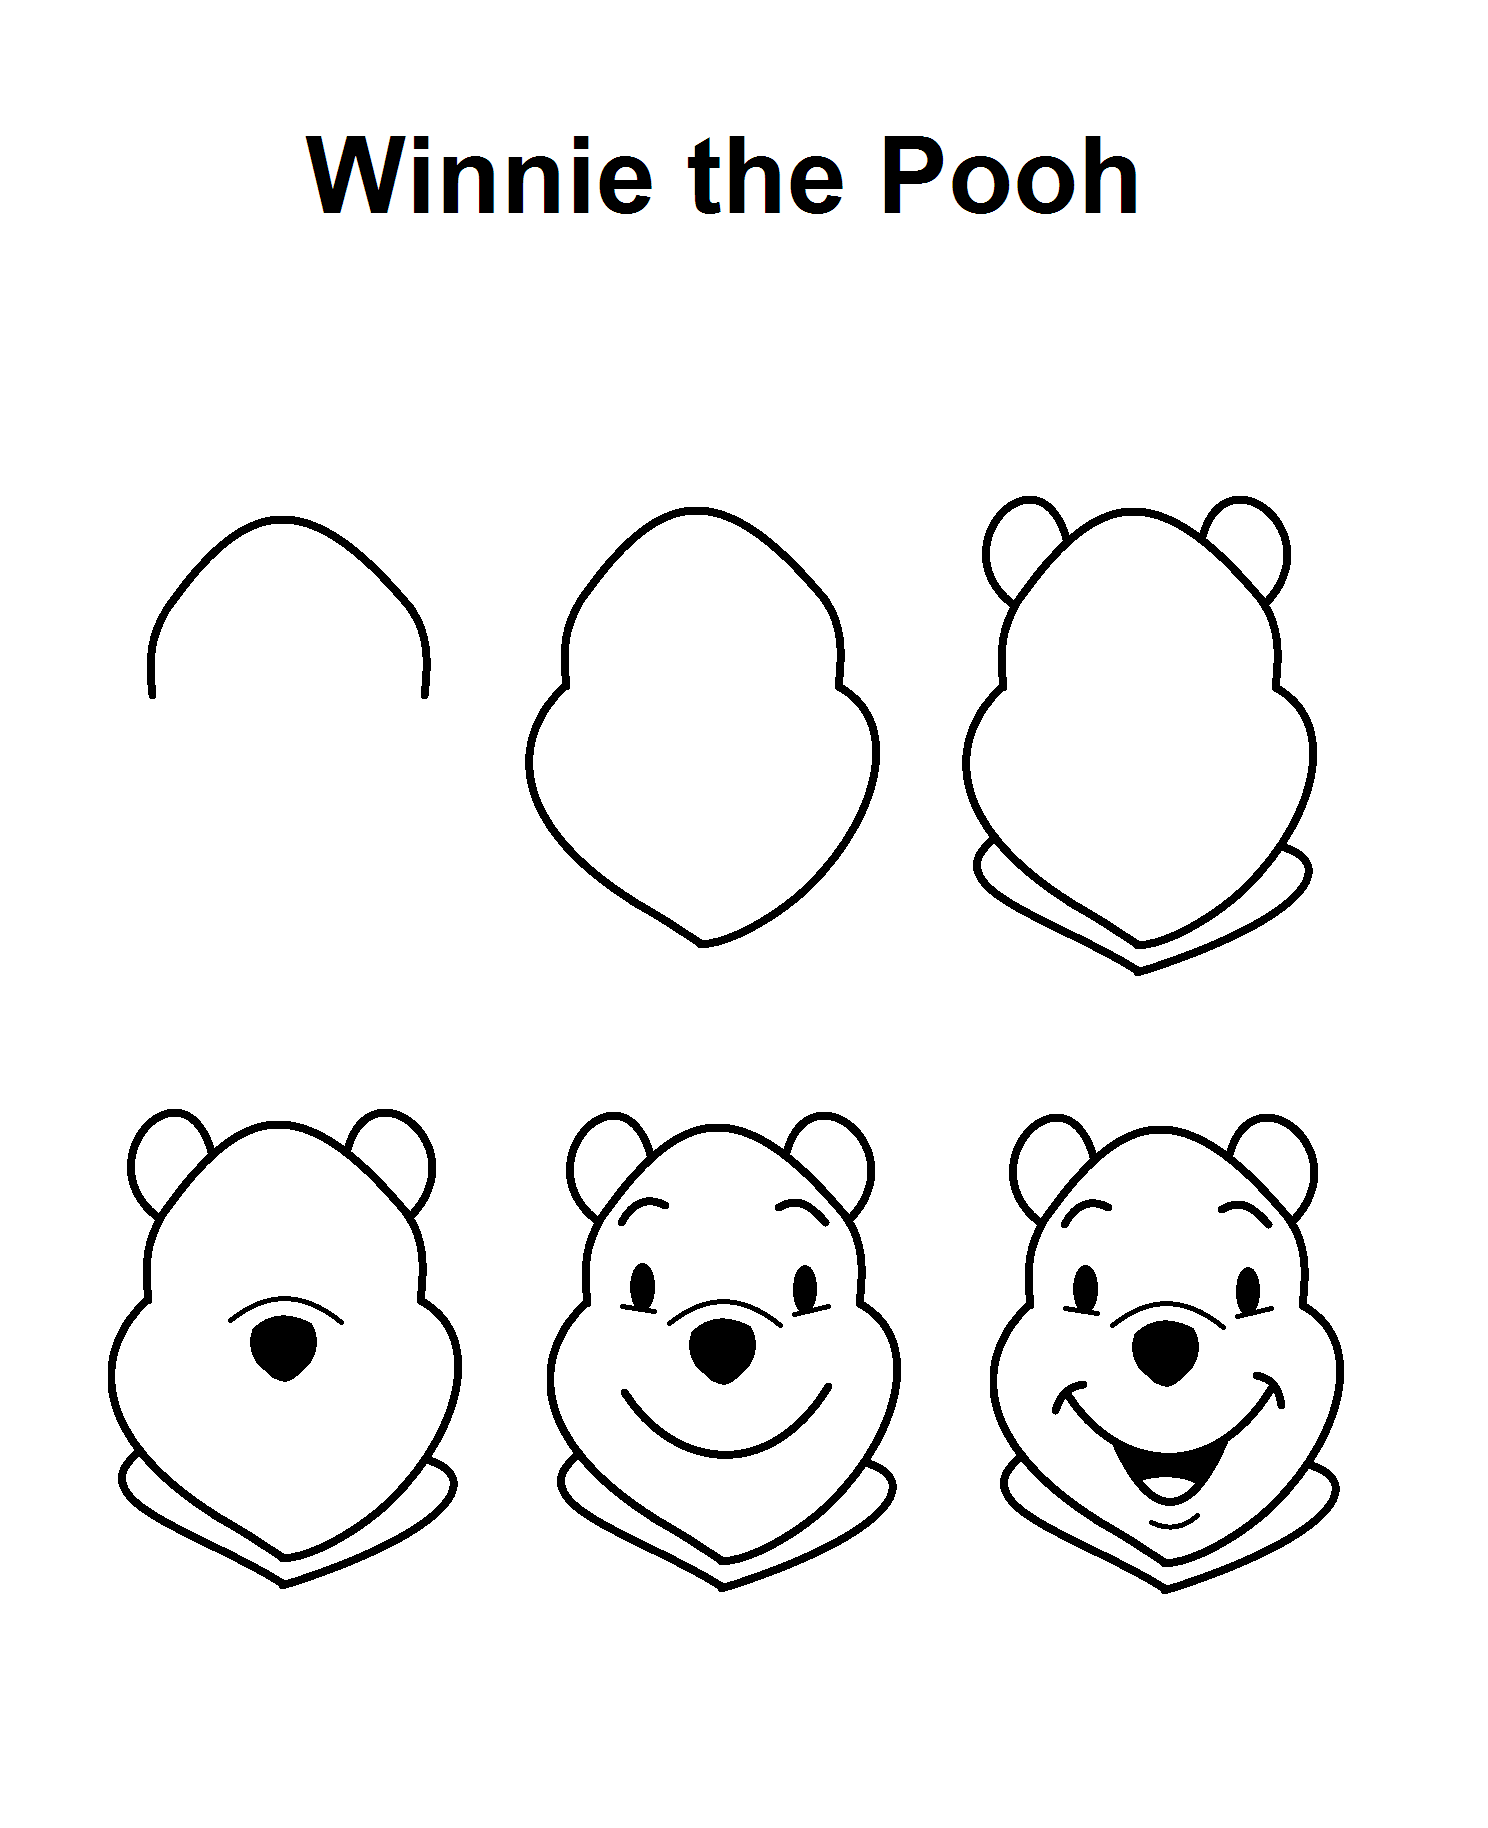 How To Draw Winnie The Pooh Characters Step By Step Winnie the Pooh stepbystep drawing tutorial Drawing